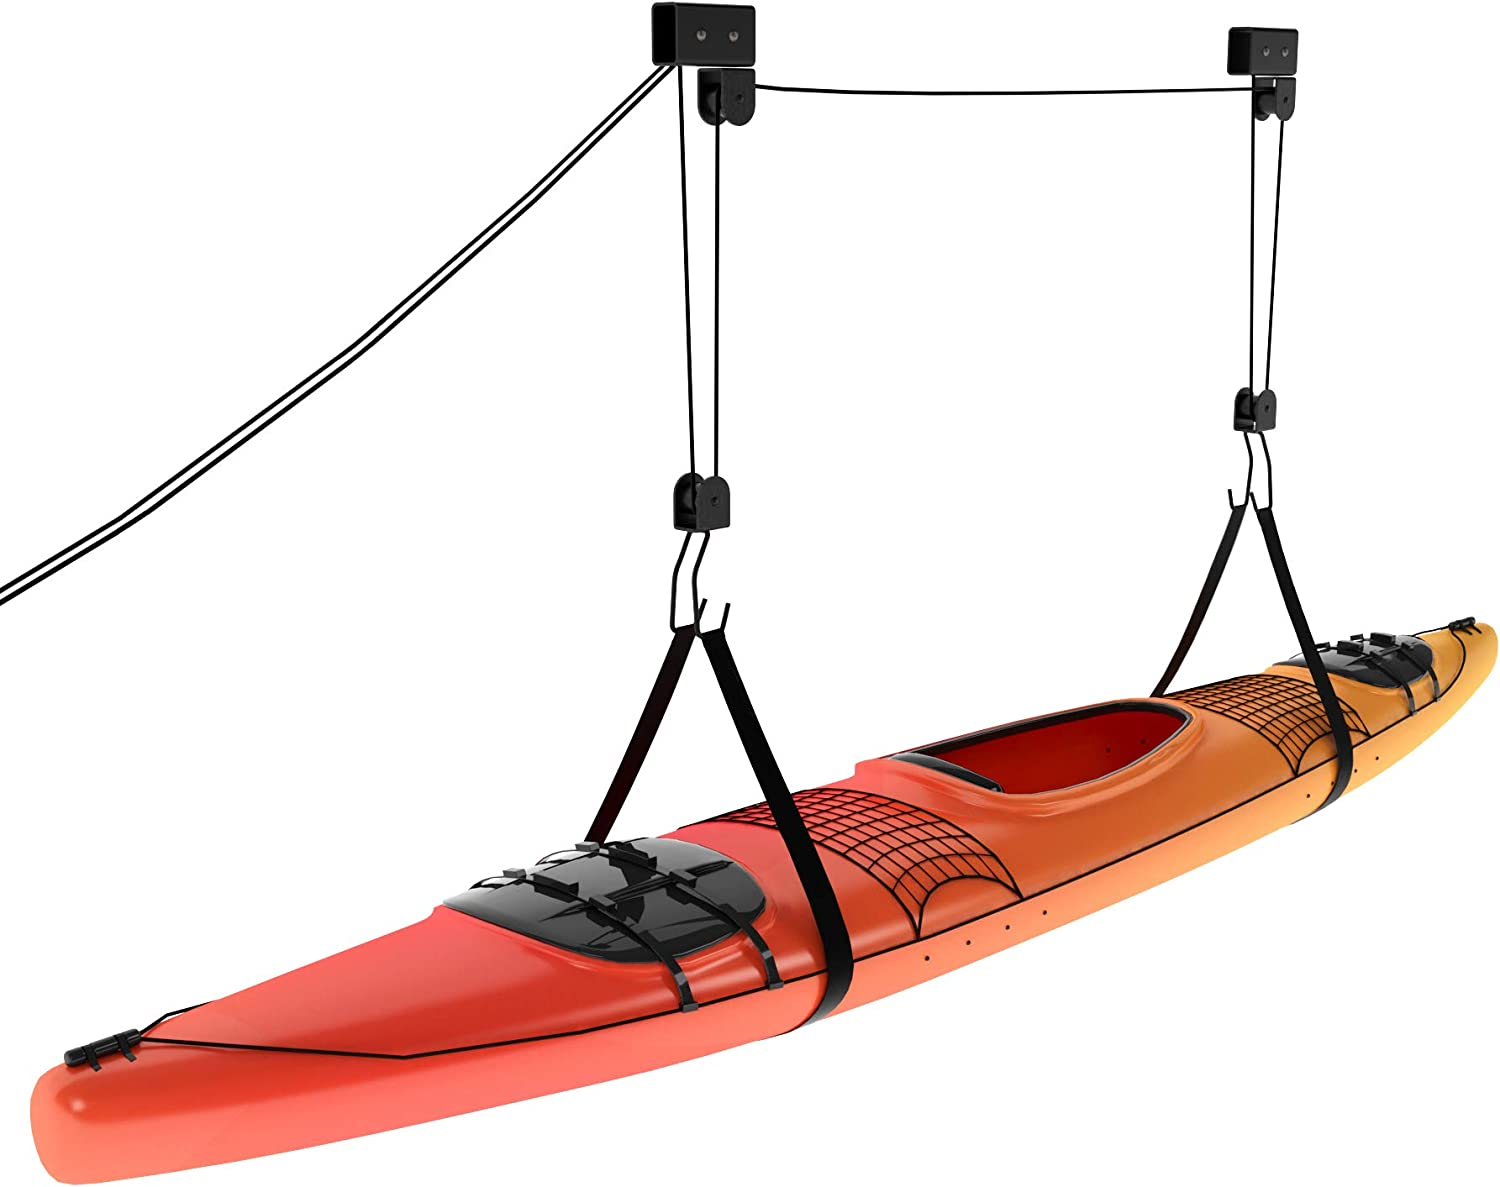 Kayak Ceiling Hoist - Overhead Garage Storage Rack for Kayak, Bike, Ladder, Canoe, Boat - Adjustable Hanger System with Hooks for Hanging & Pulley for Lifting